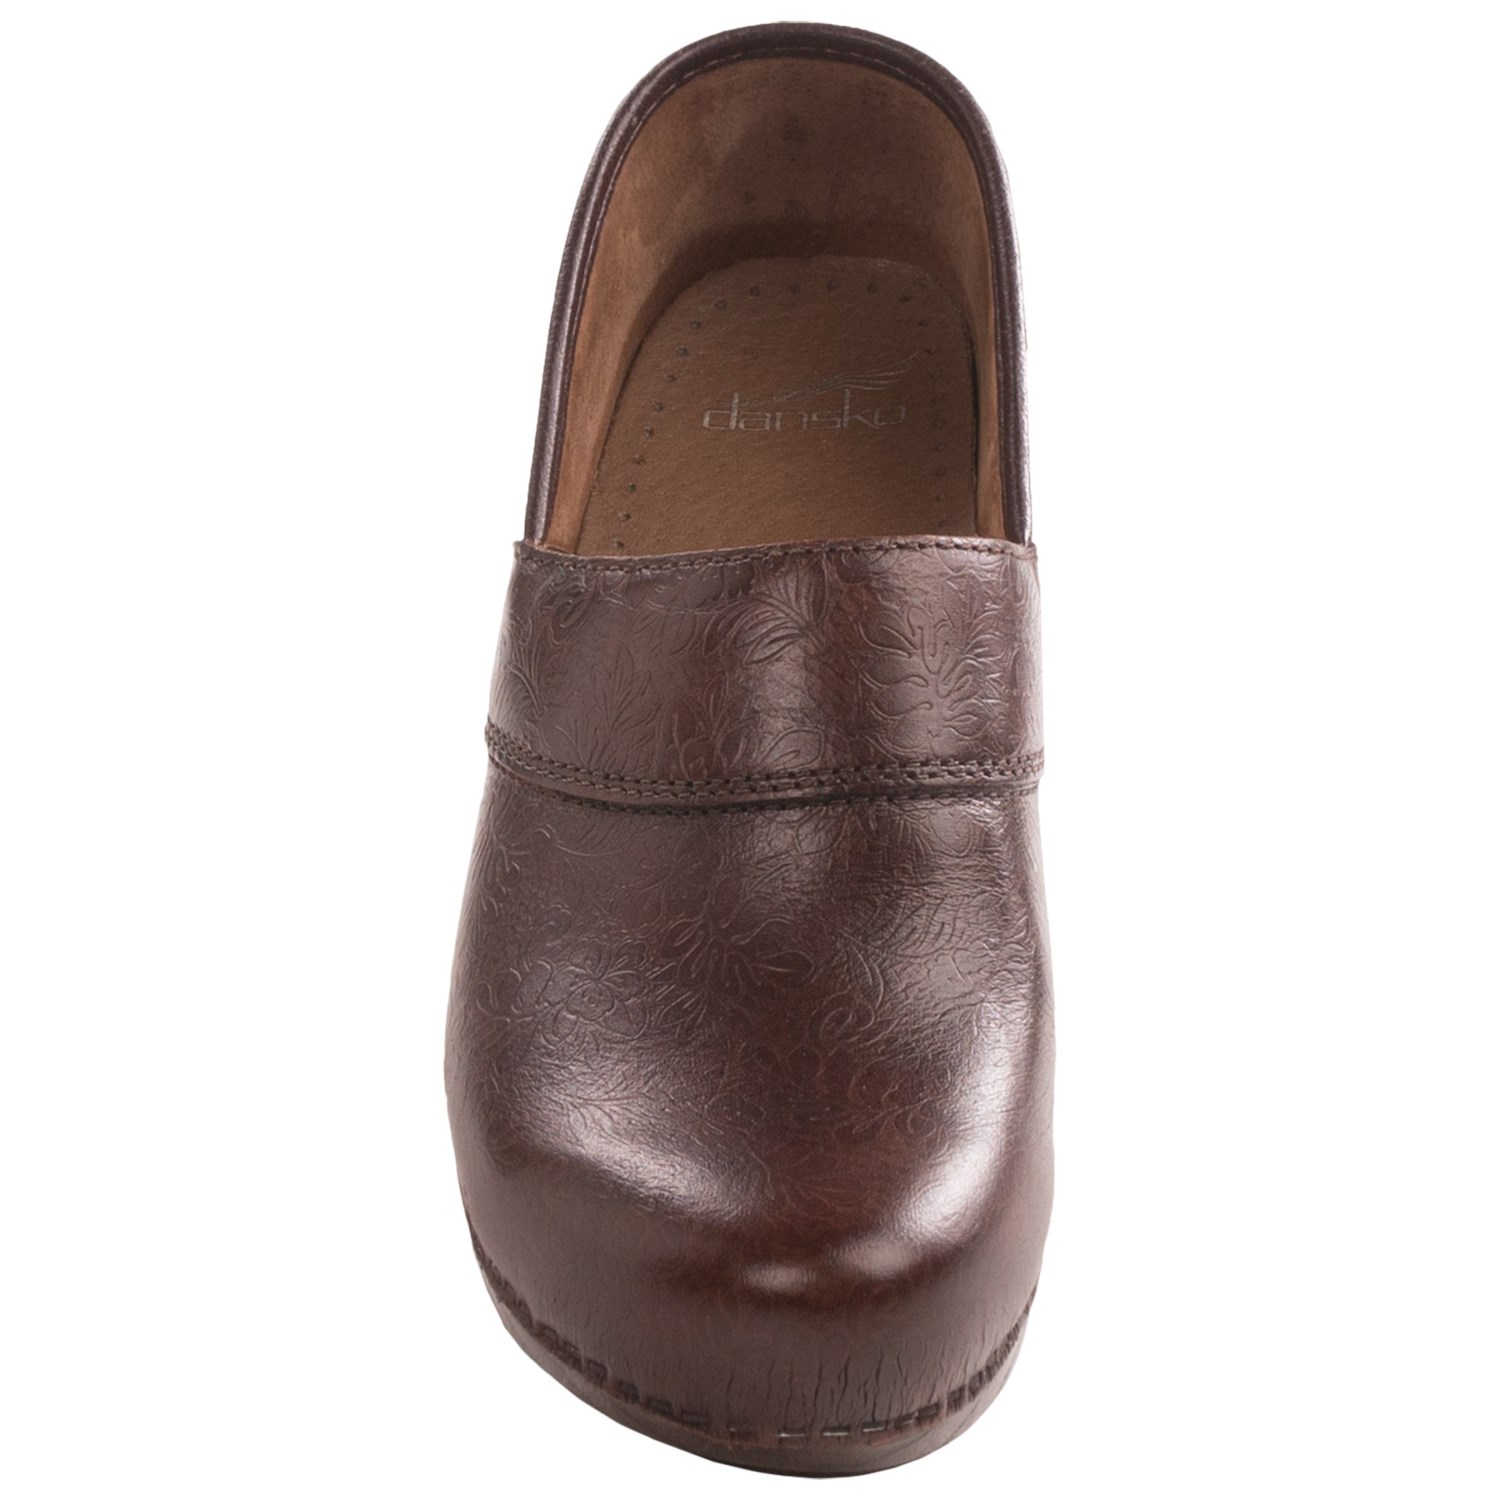 Dansko Shoes Australia